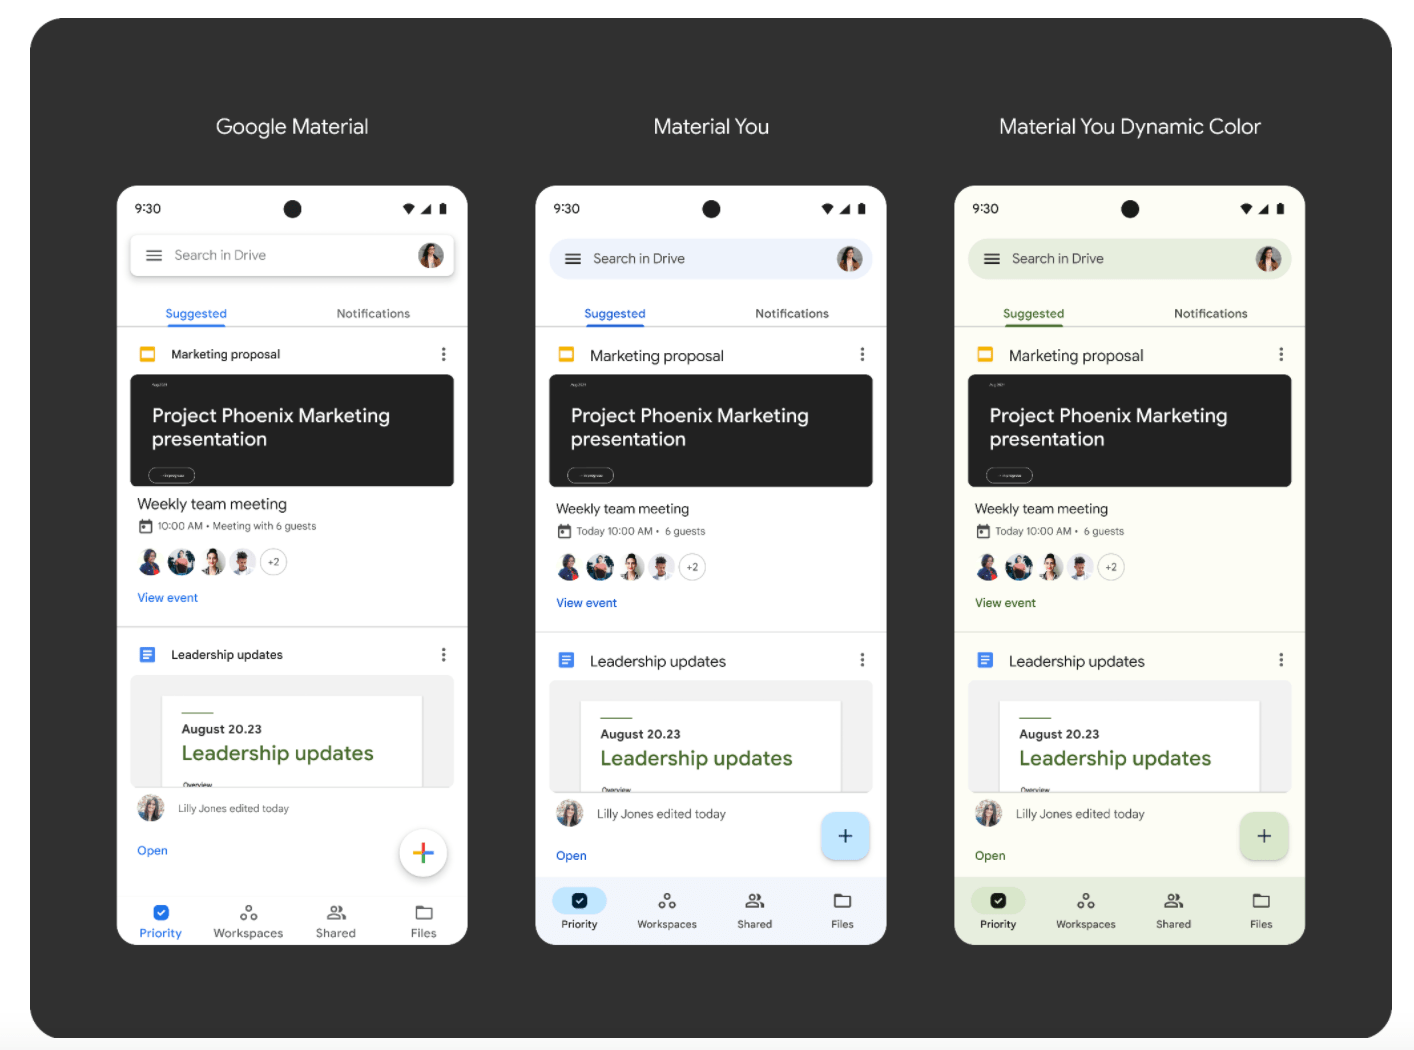 Material You Google Workspace